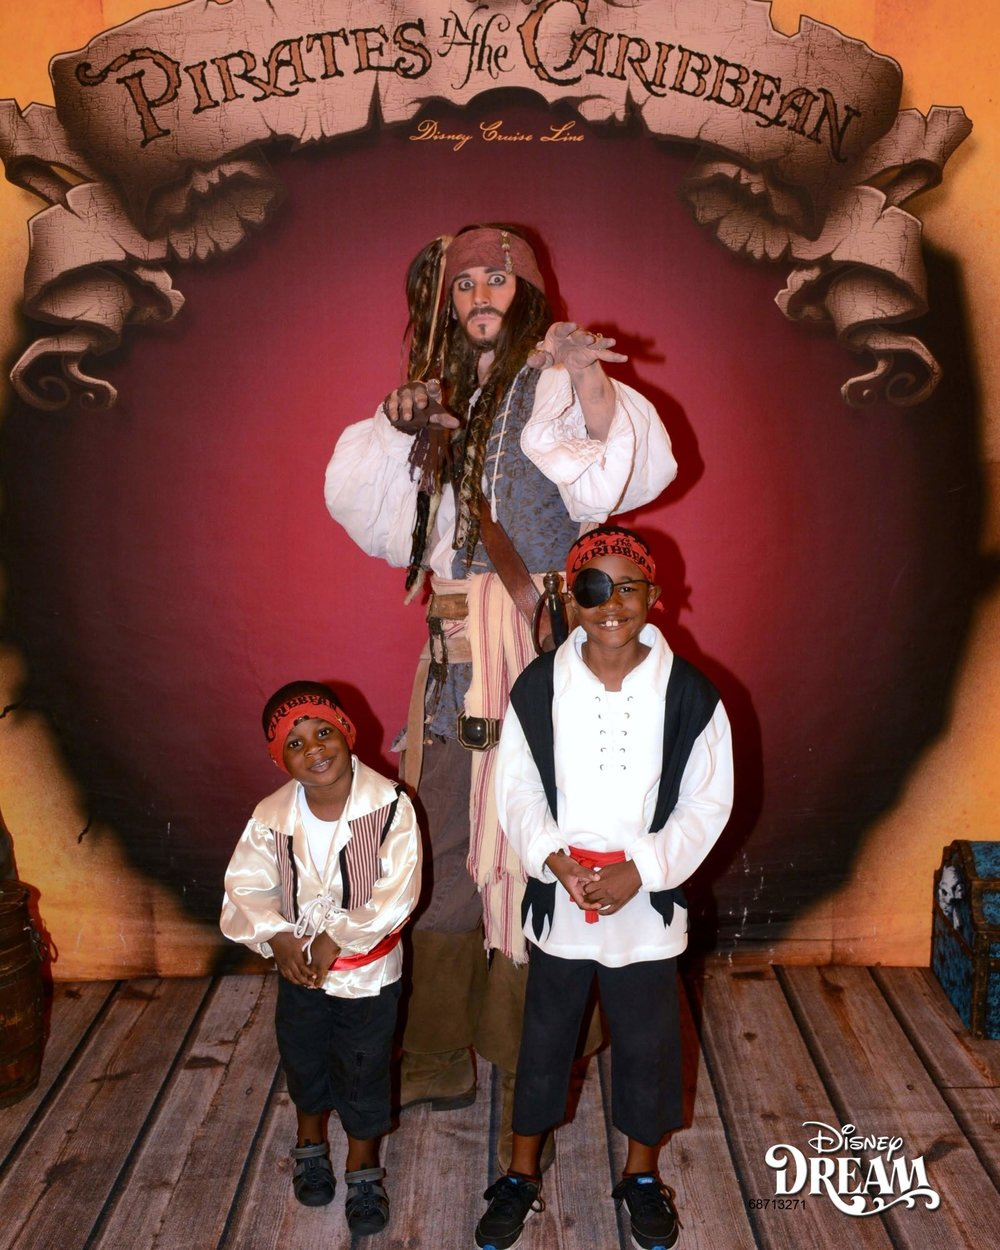 784-68713271-Other O Jack Sparrow 3 MS-50149_GPR.jpg